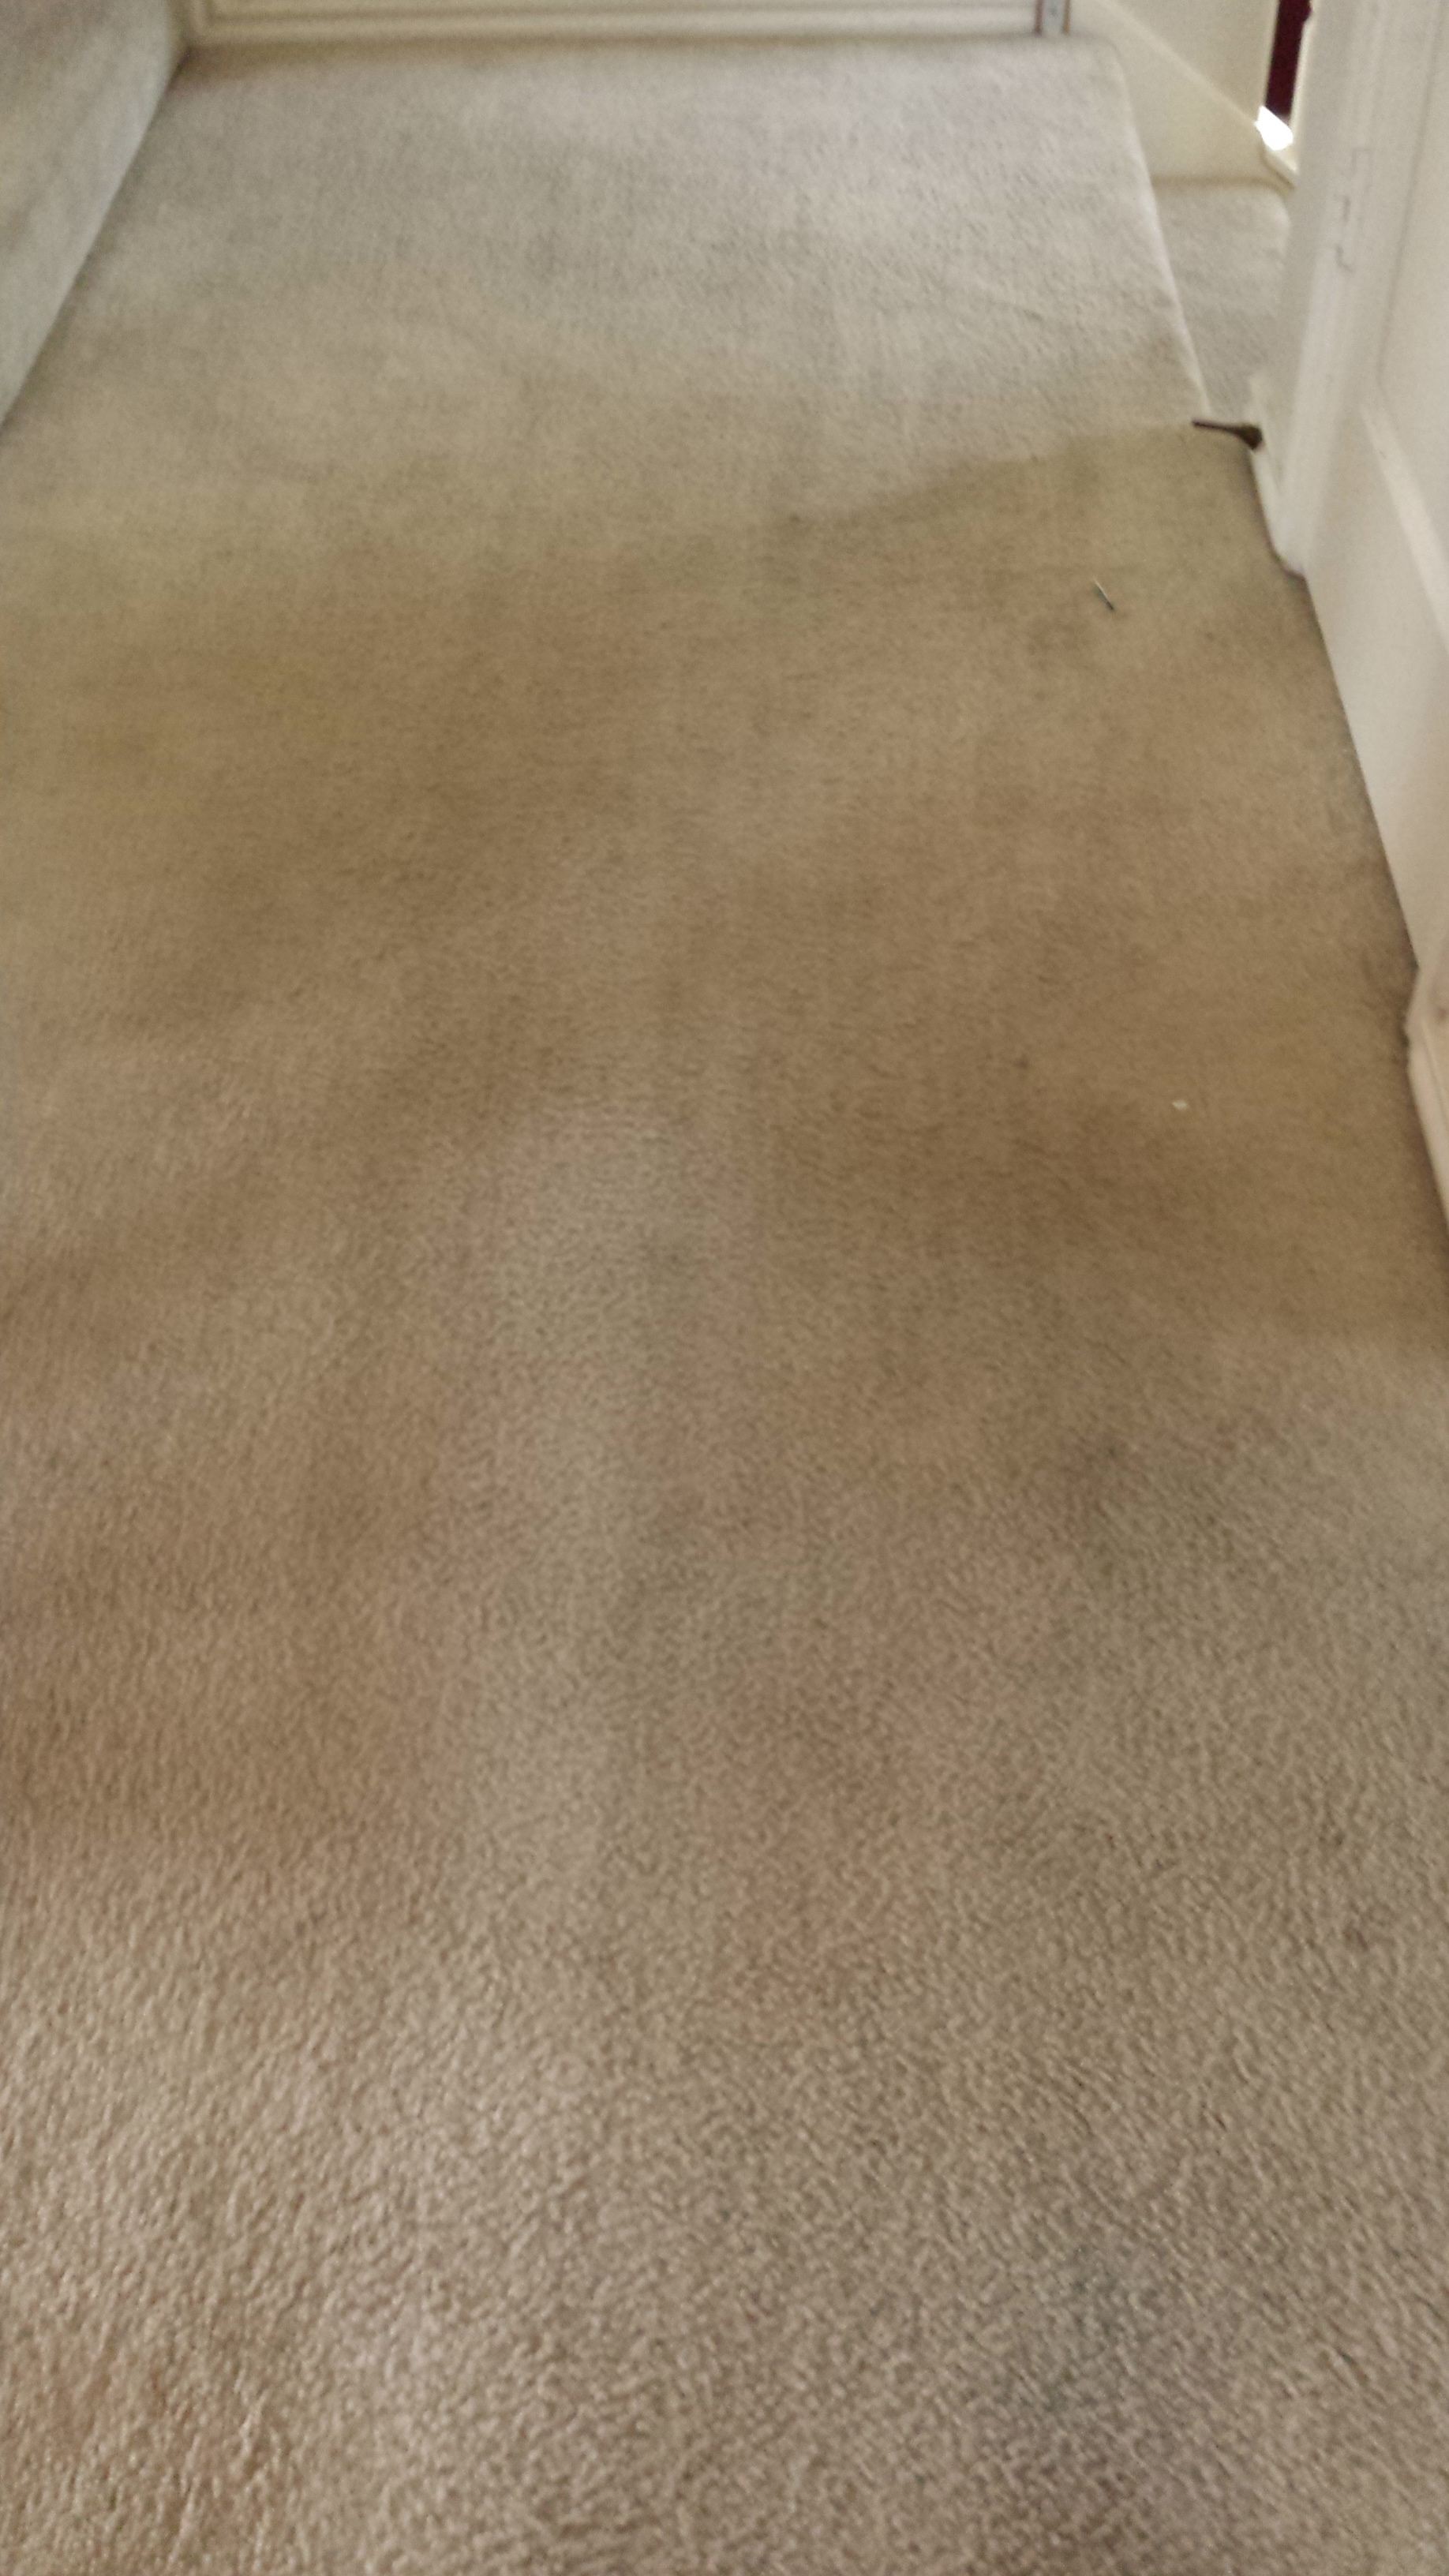 Carpet Cleaning Archives Page 2 of 3